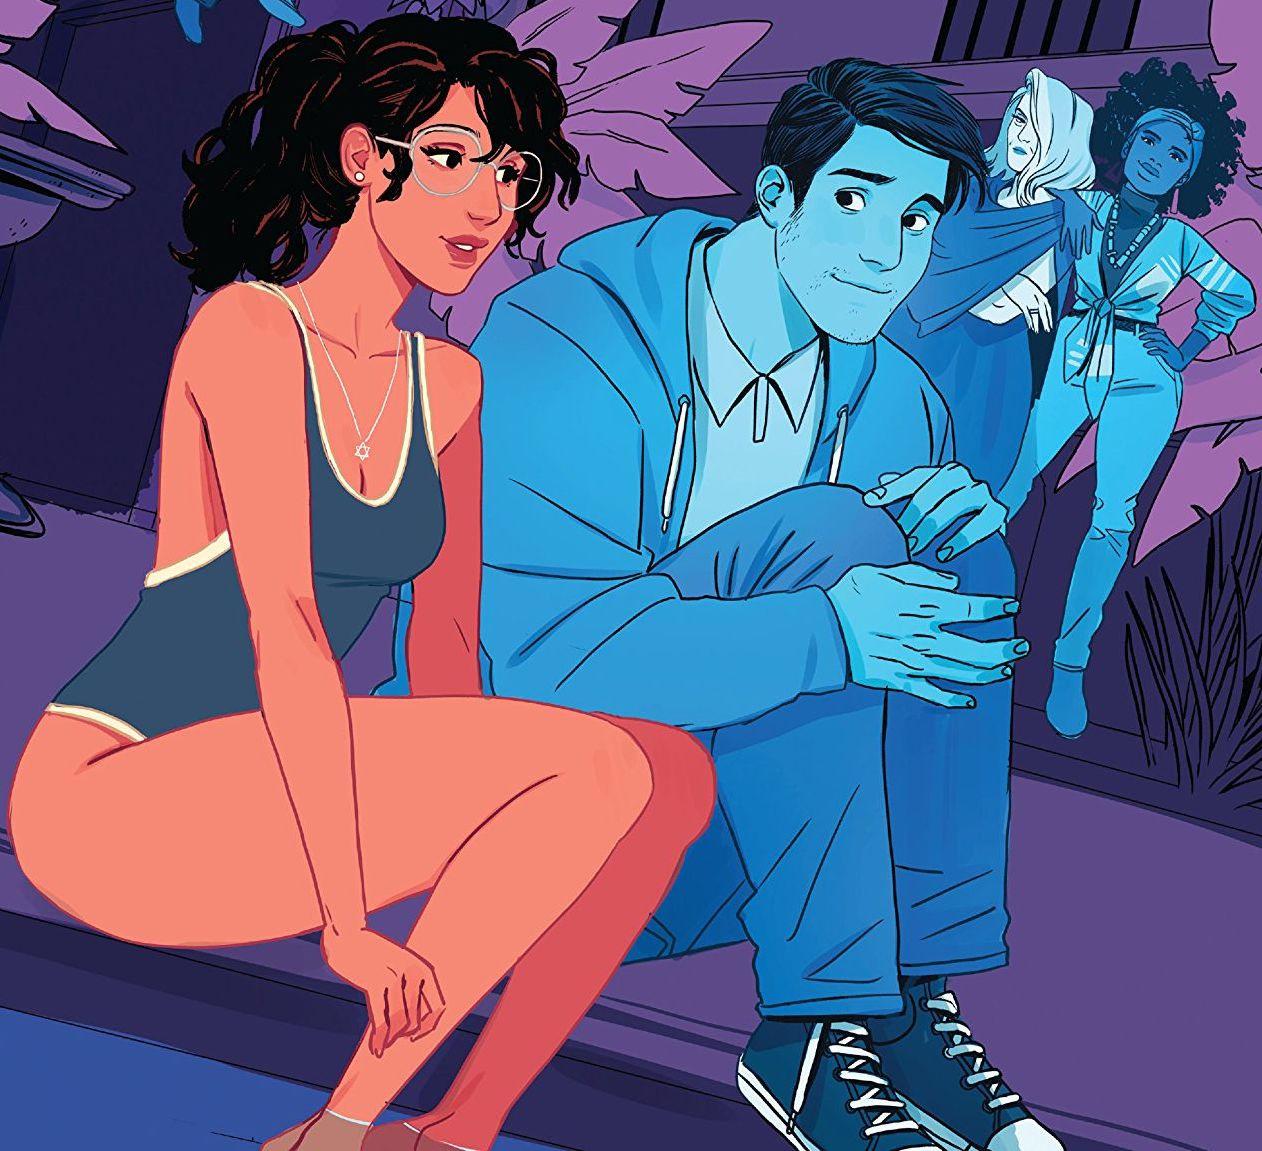 Ghosted in LA #2 review: Sometimes it's okay to say no